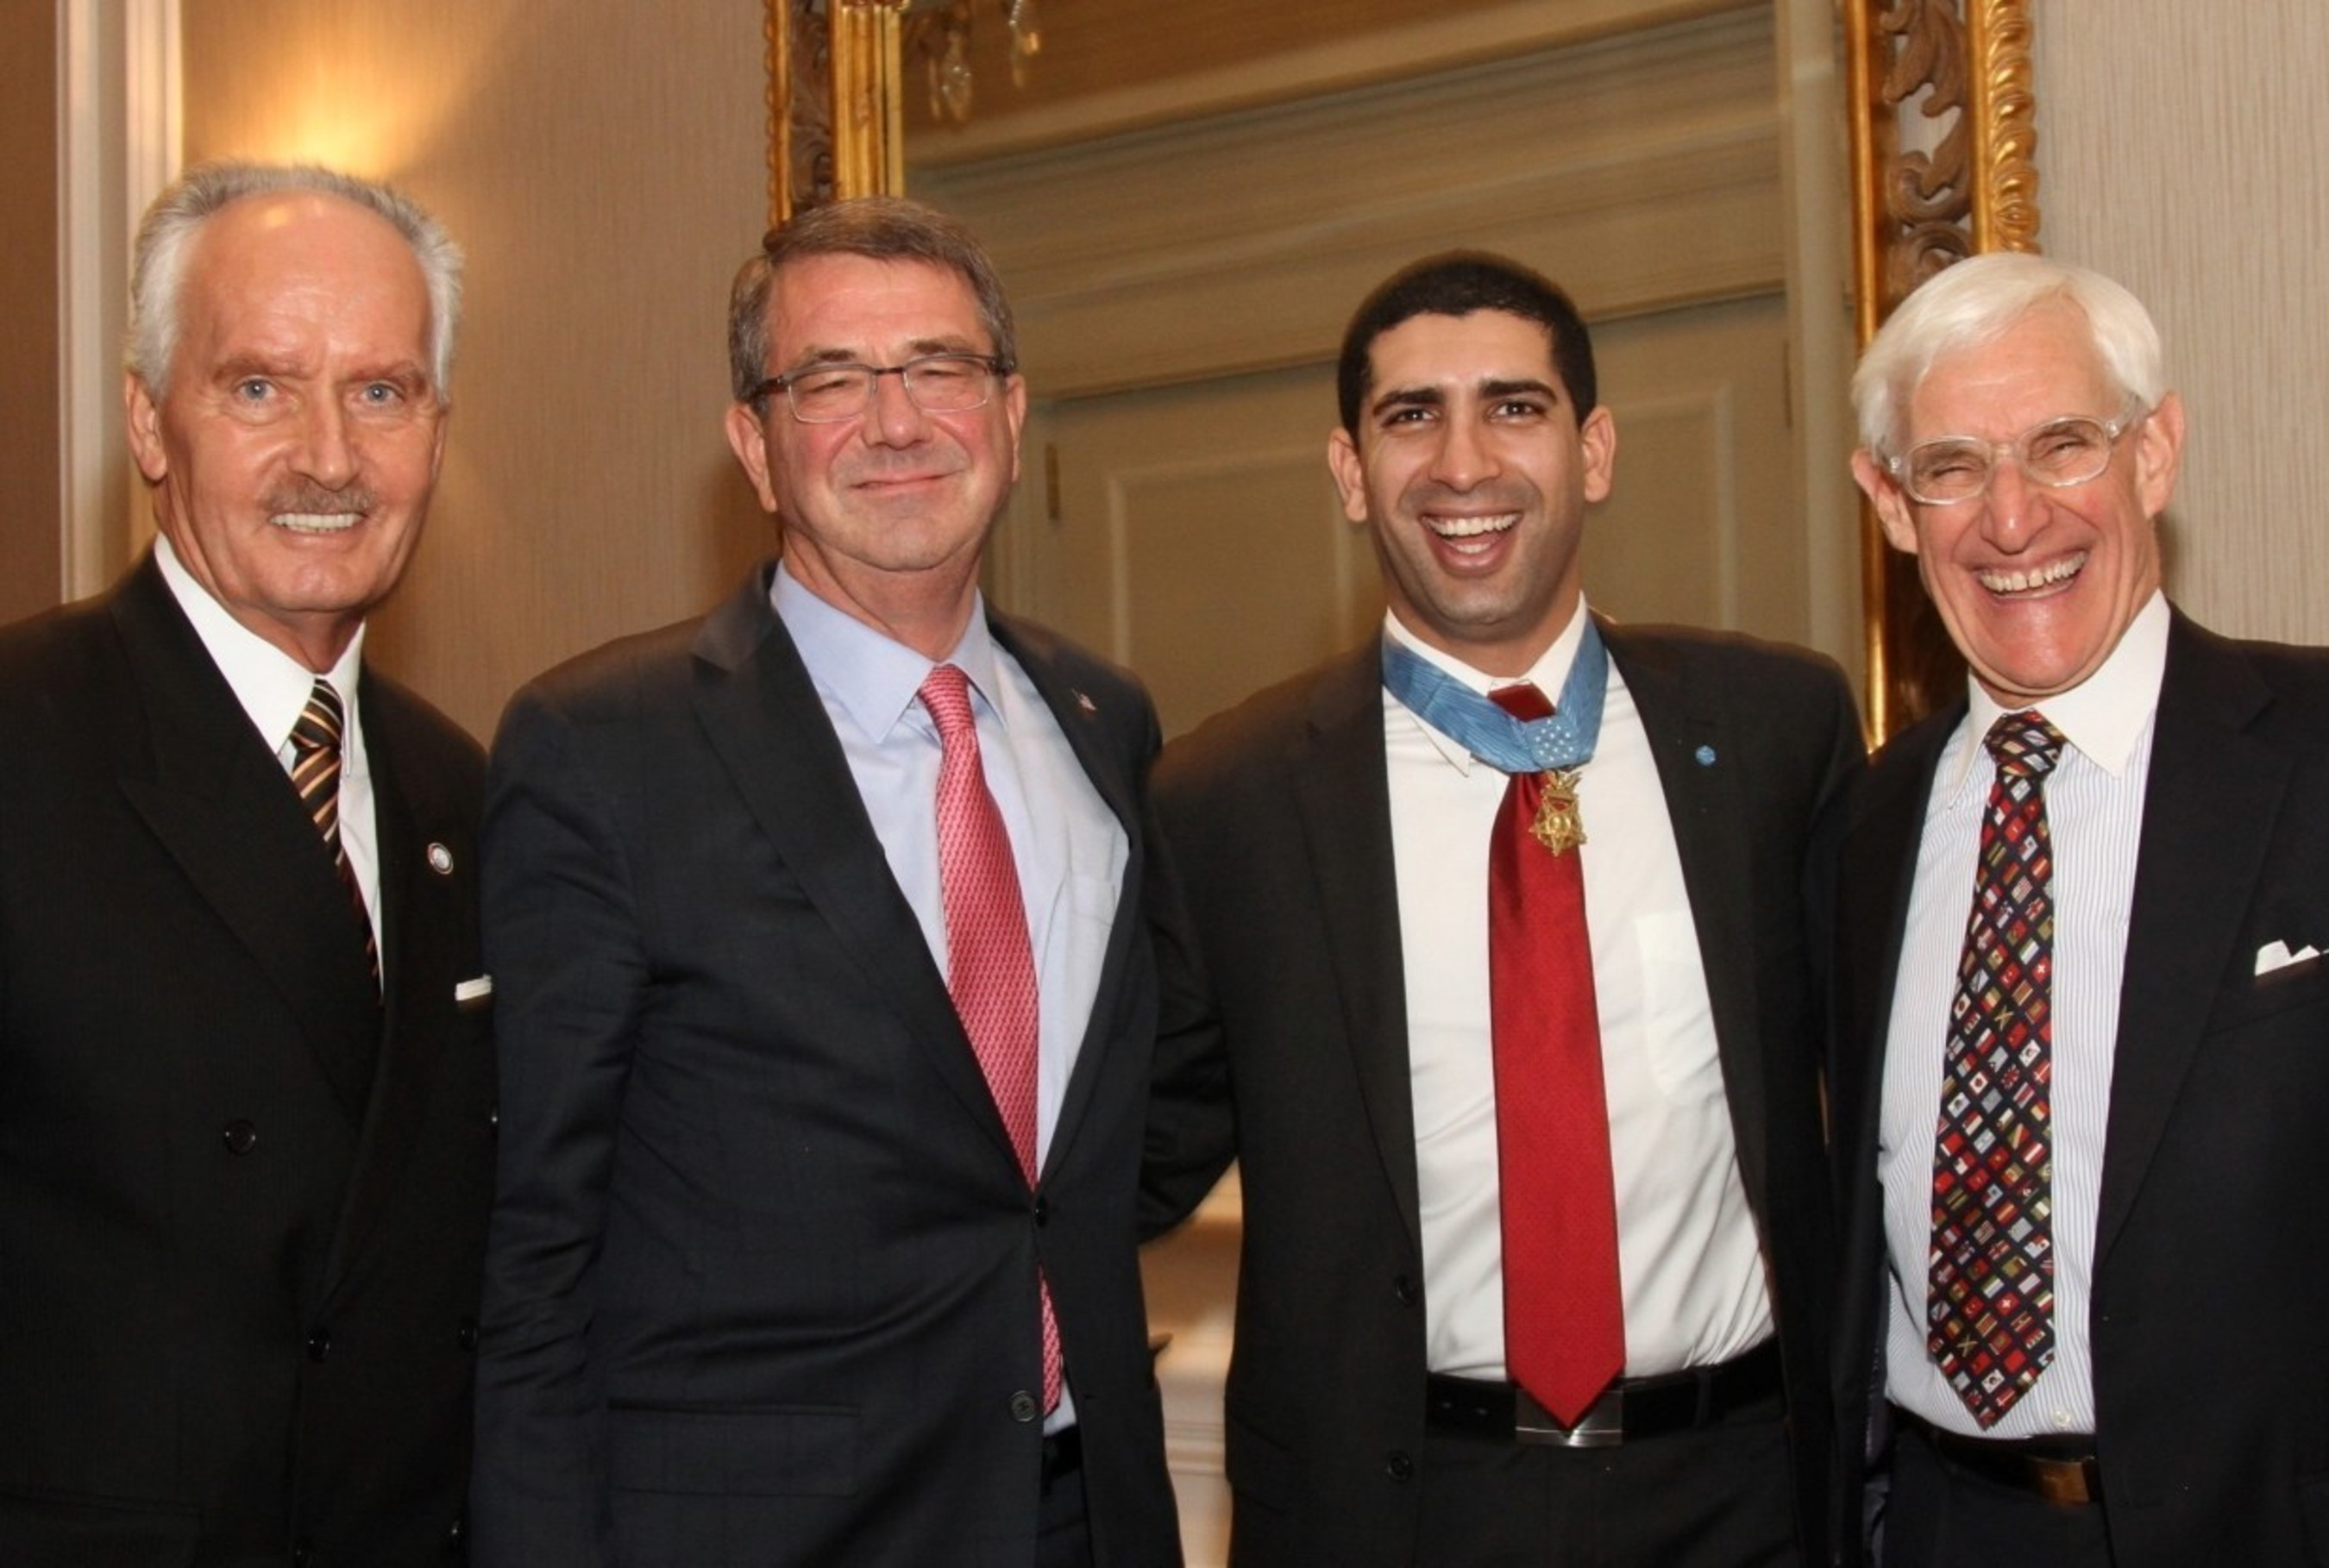 Tony Culley-Foster, President & CEO of the World Affairs Council-DC; The Hon. Ash Carter, US Secretary of Defense; Capt. Florent Groberg, Medal of Honor Recipient; and Patrick Gross, Founding Chairman of the World Affairs Council-DC. *Credit: Focused Images*